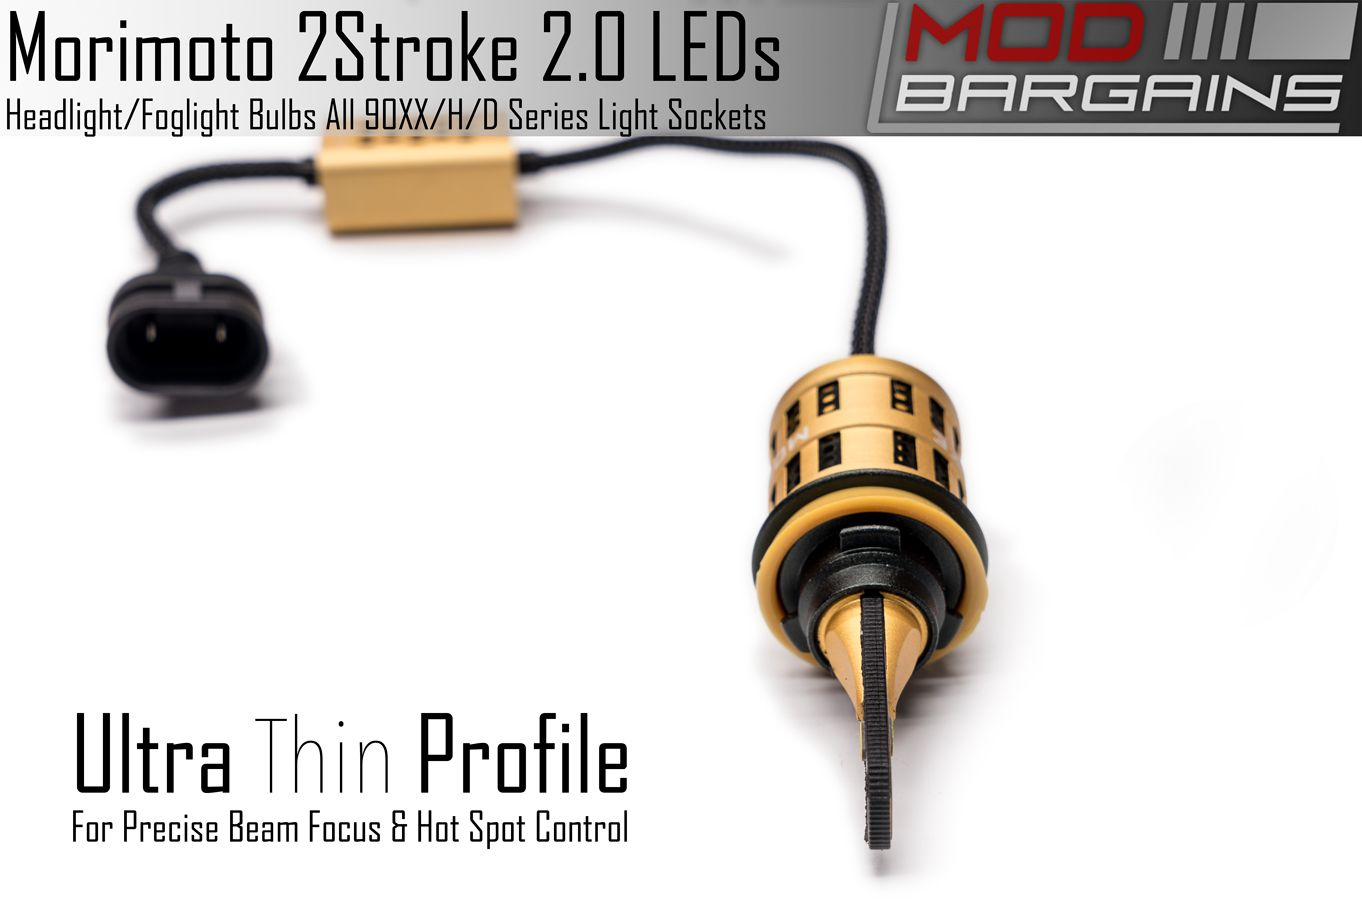 Morimoto 2Stroke 2.0 LEDs for all H, D and 90XX Headlight and Foglight applications